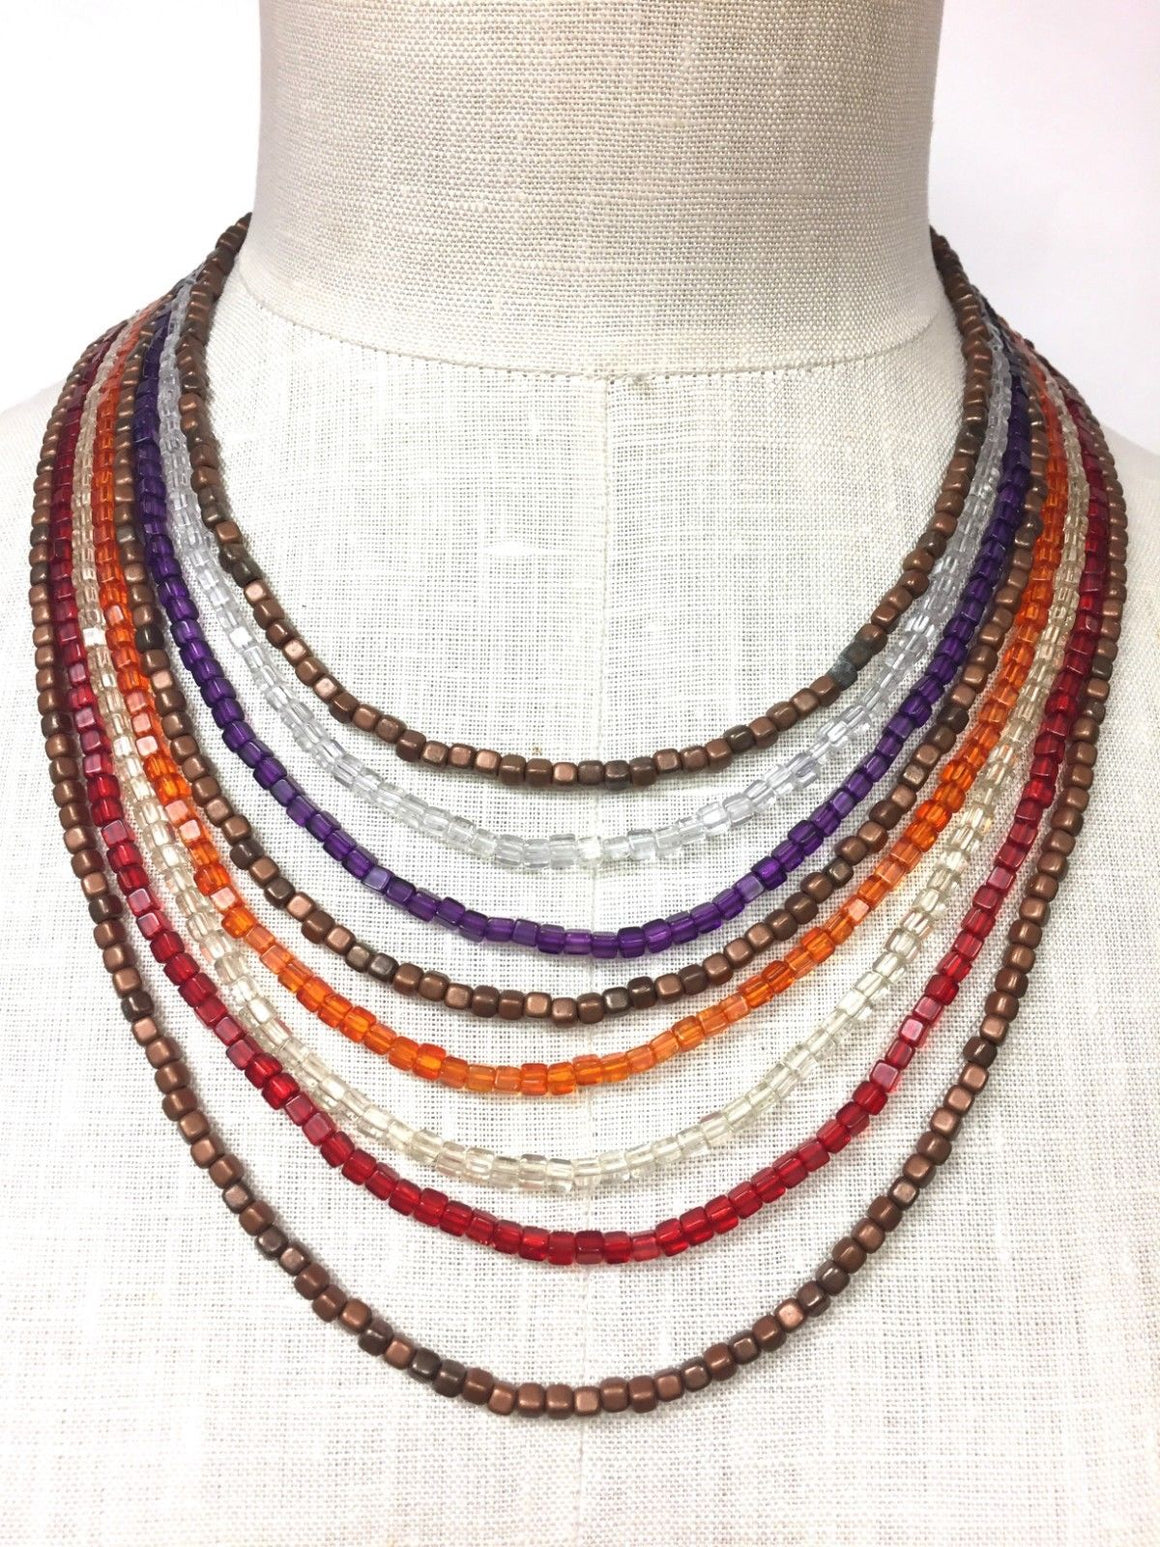 LAILA ROWE Multi-Color Cubic Glass Beads Copper-Tone Clasp Eight-Strand Necklace